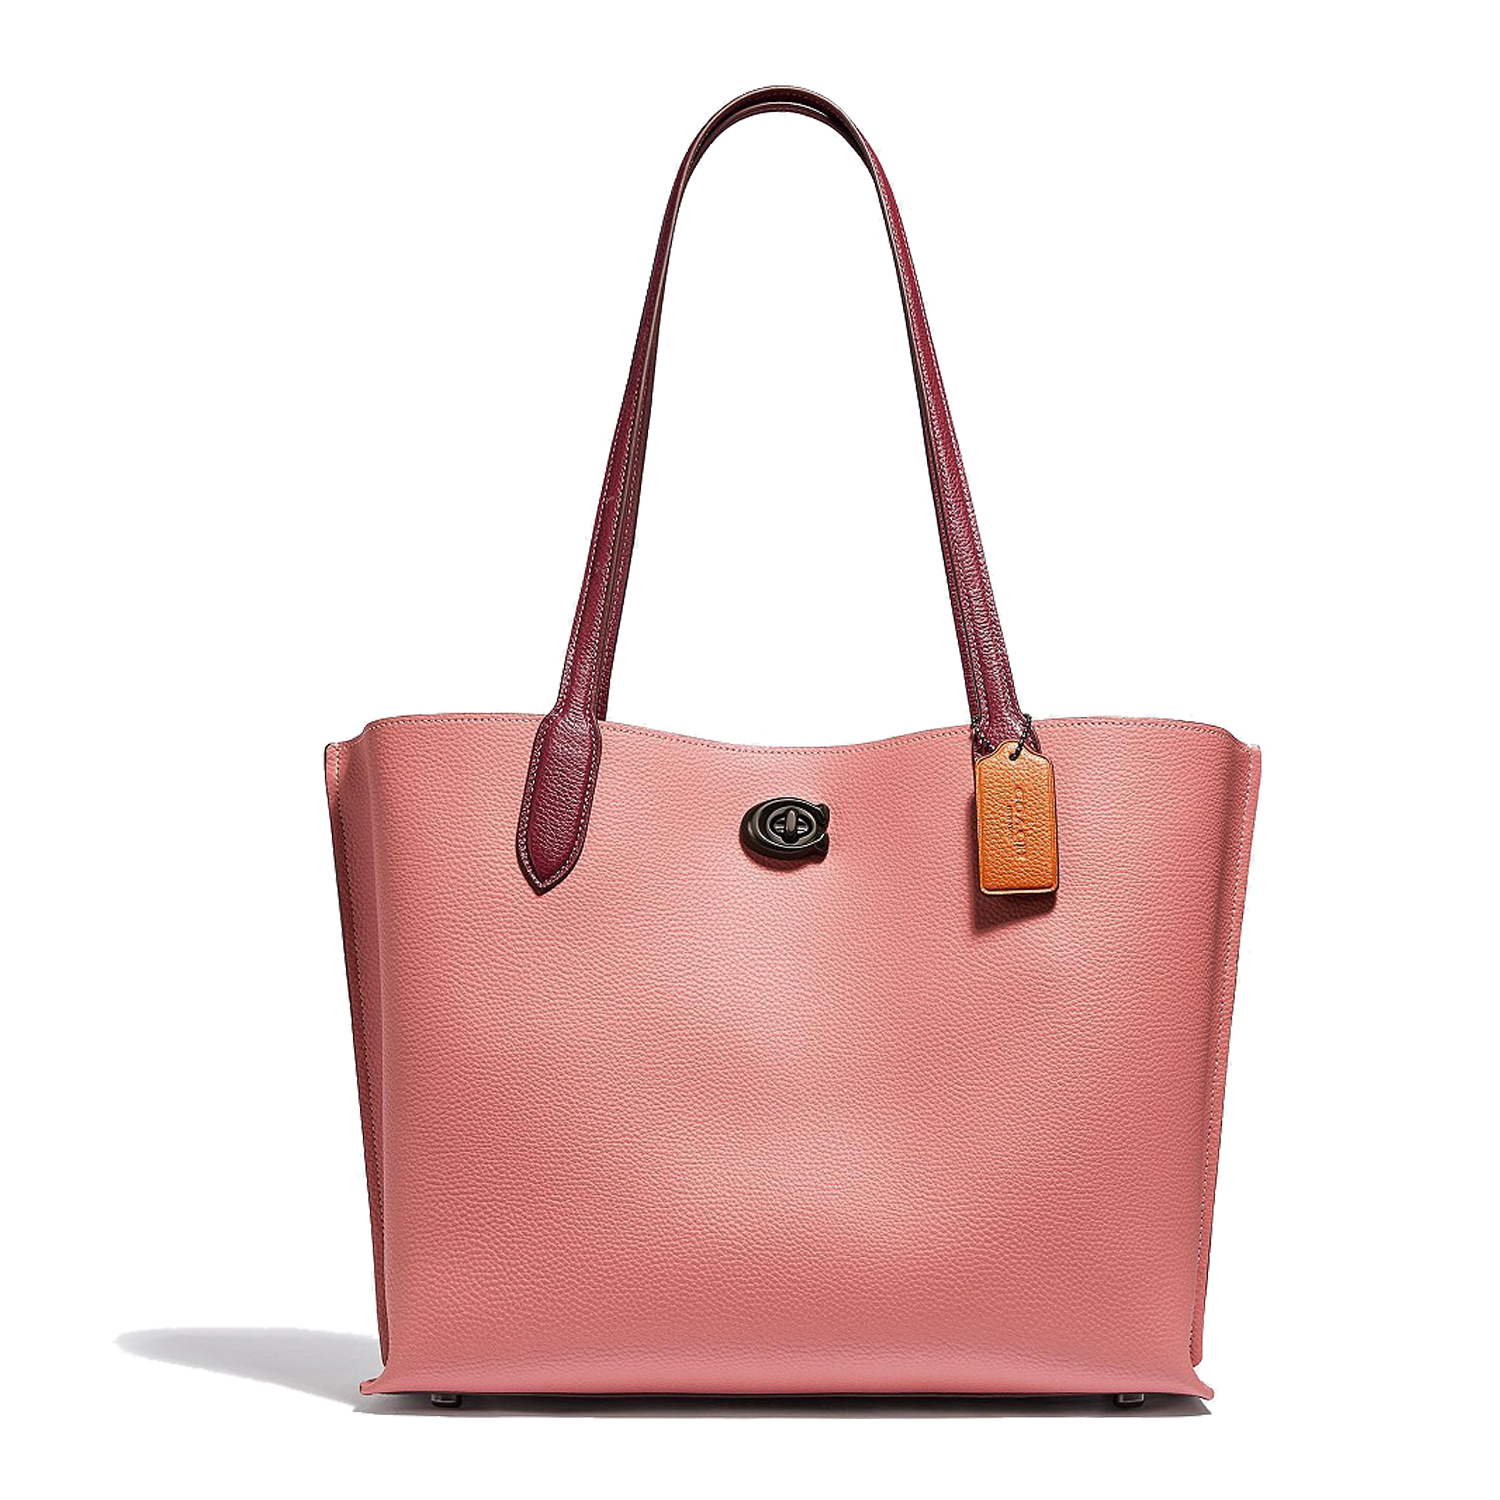 Coach Willow tote bag